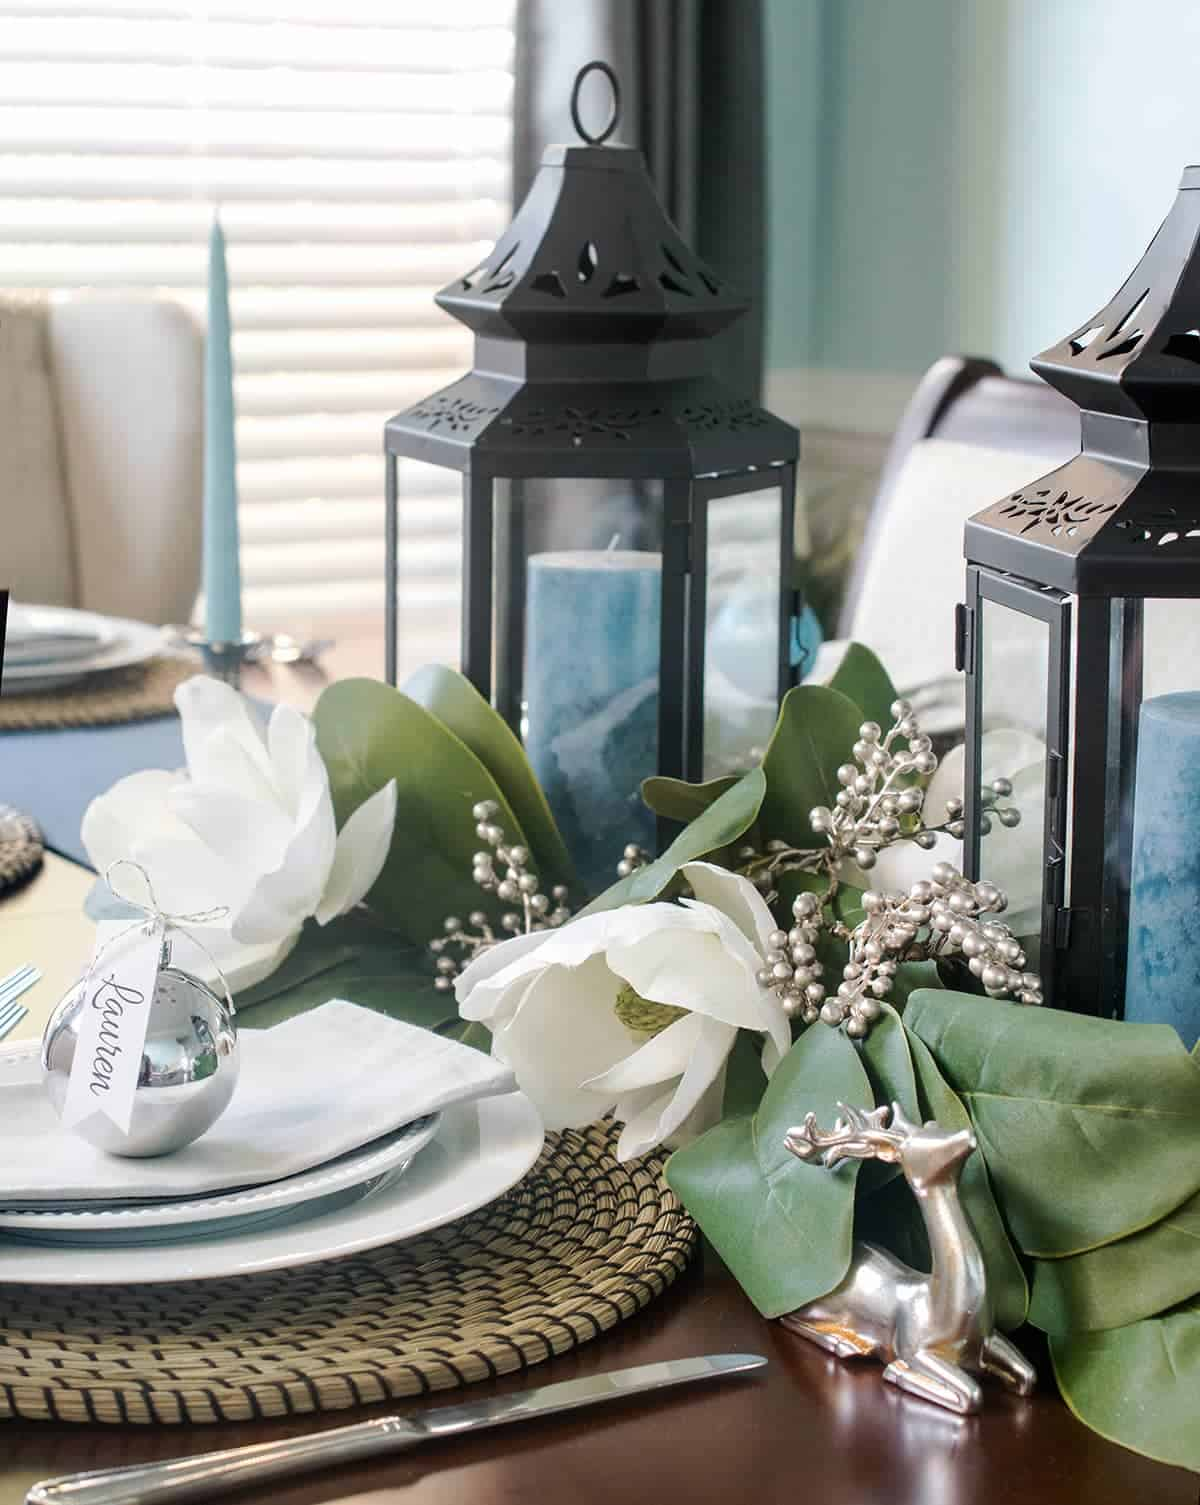 Christmas table setting with blue candles inside black lanterns.  Magnolia flower garland. Silver ornament, deer, and berry accents.